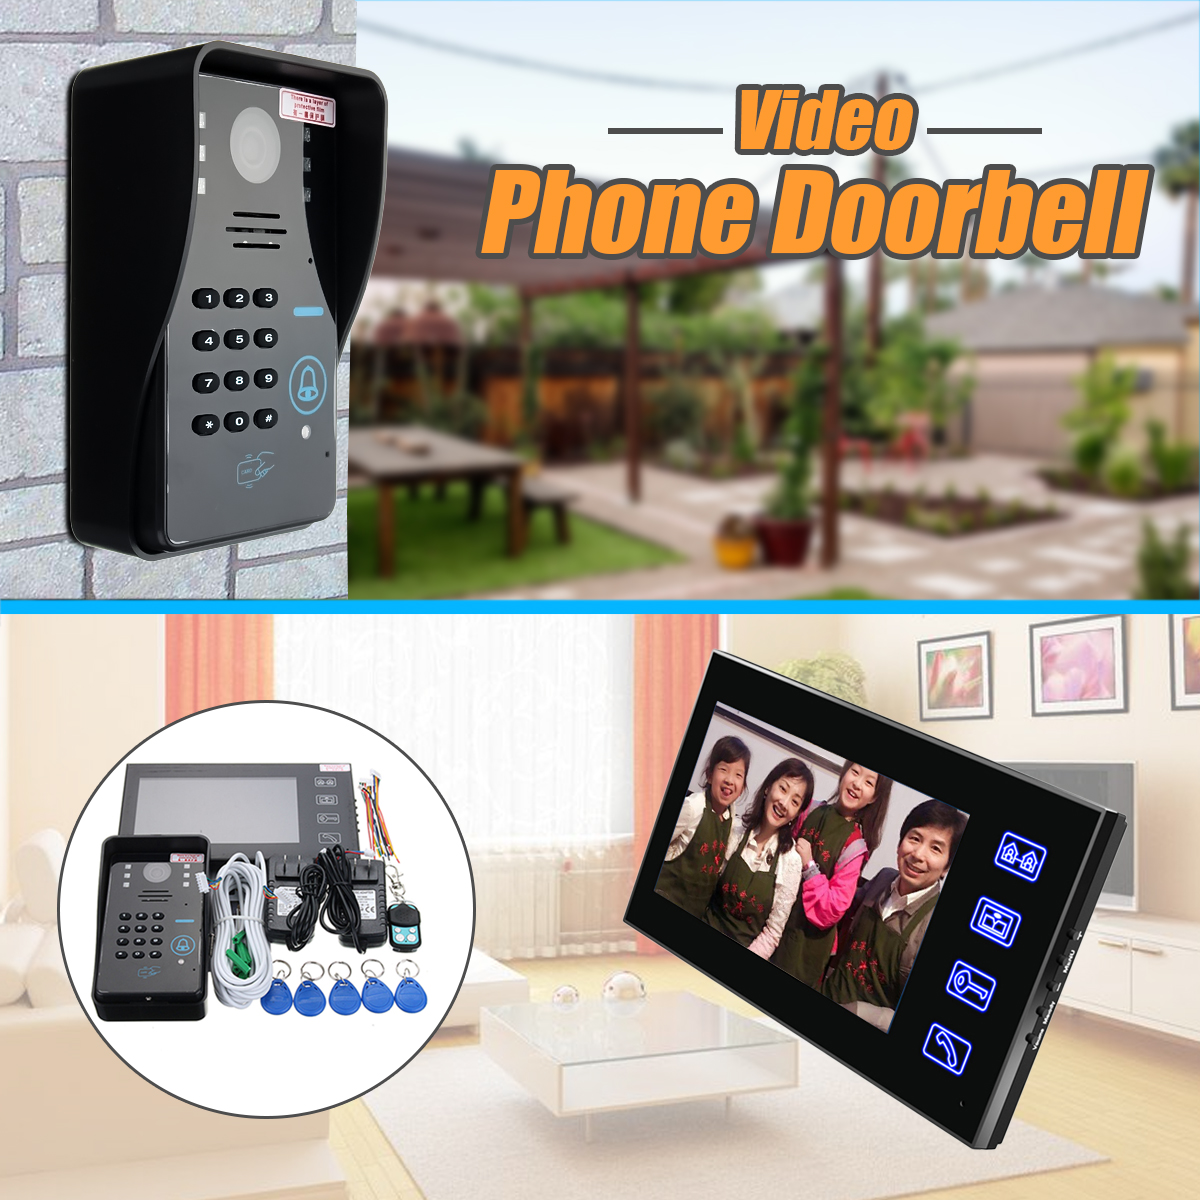 Safurance 7 LCD RFID Video Door Bell Phone Doorbell Intercom System Touch Key IR Camera Home Security Building Automation